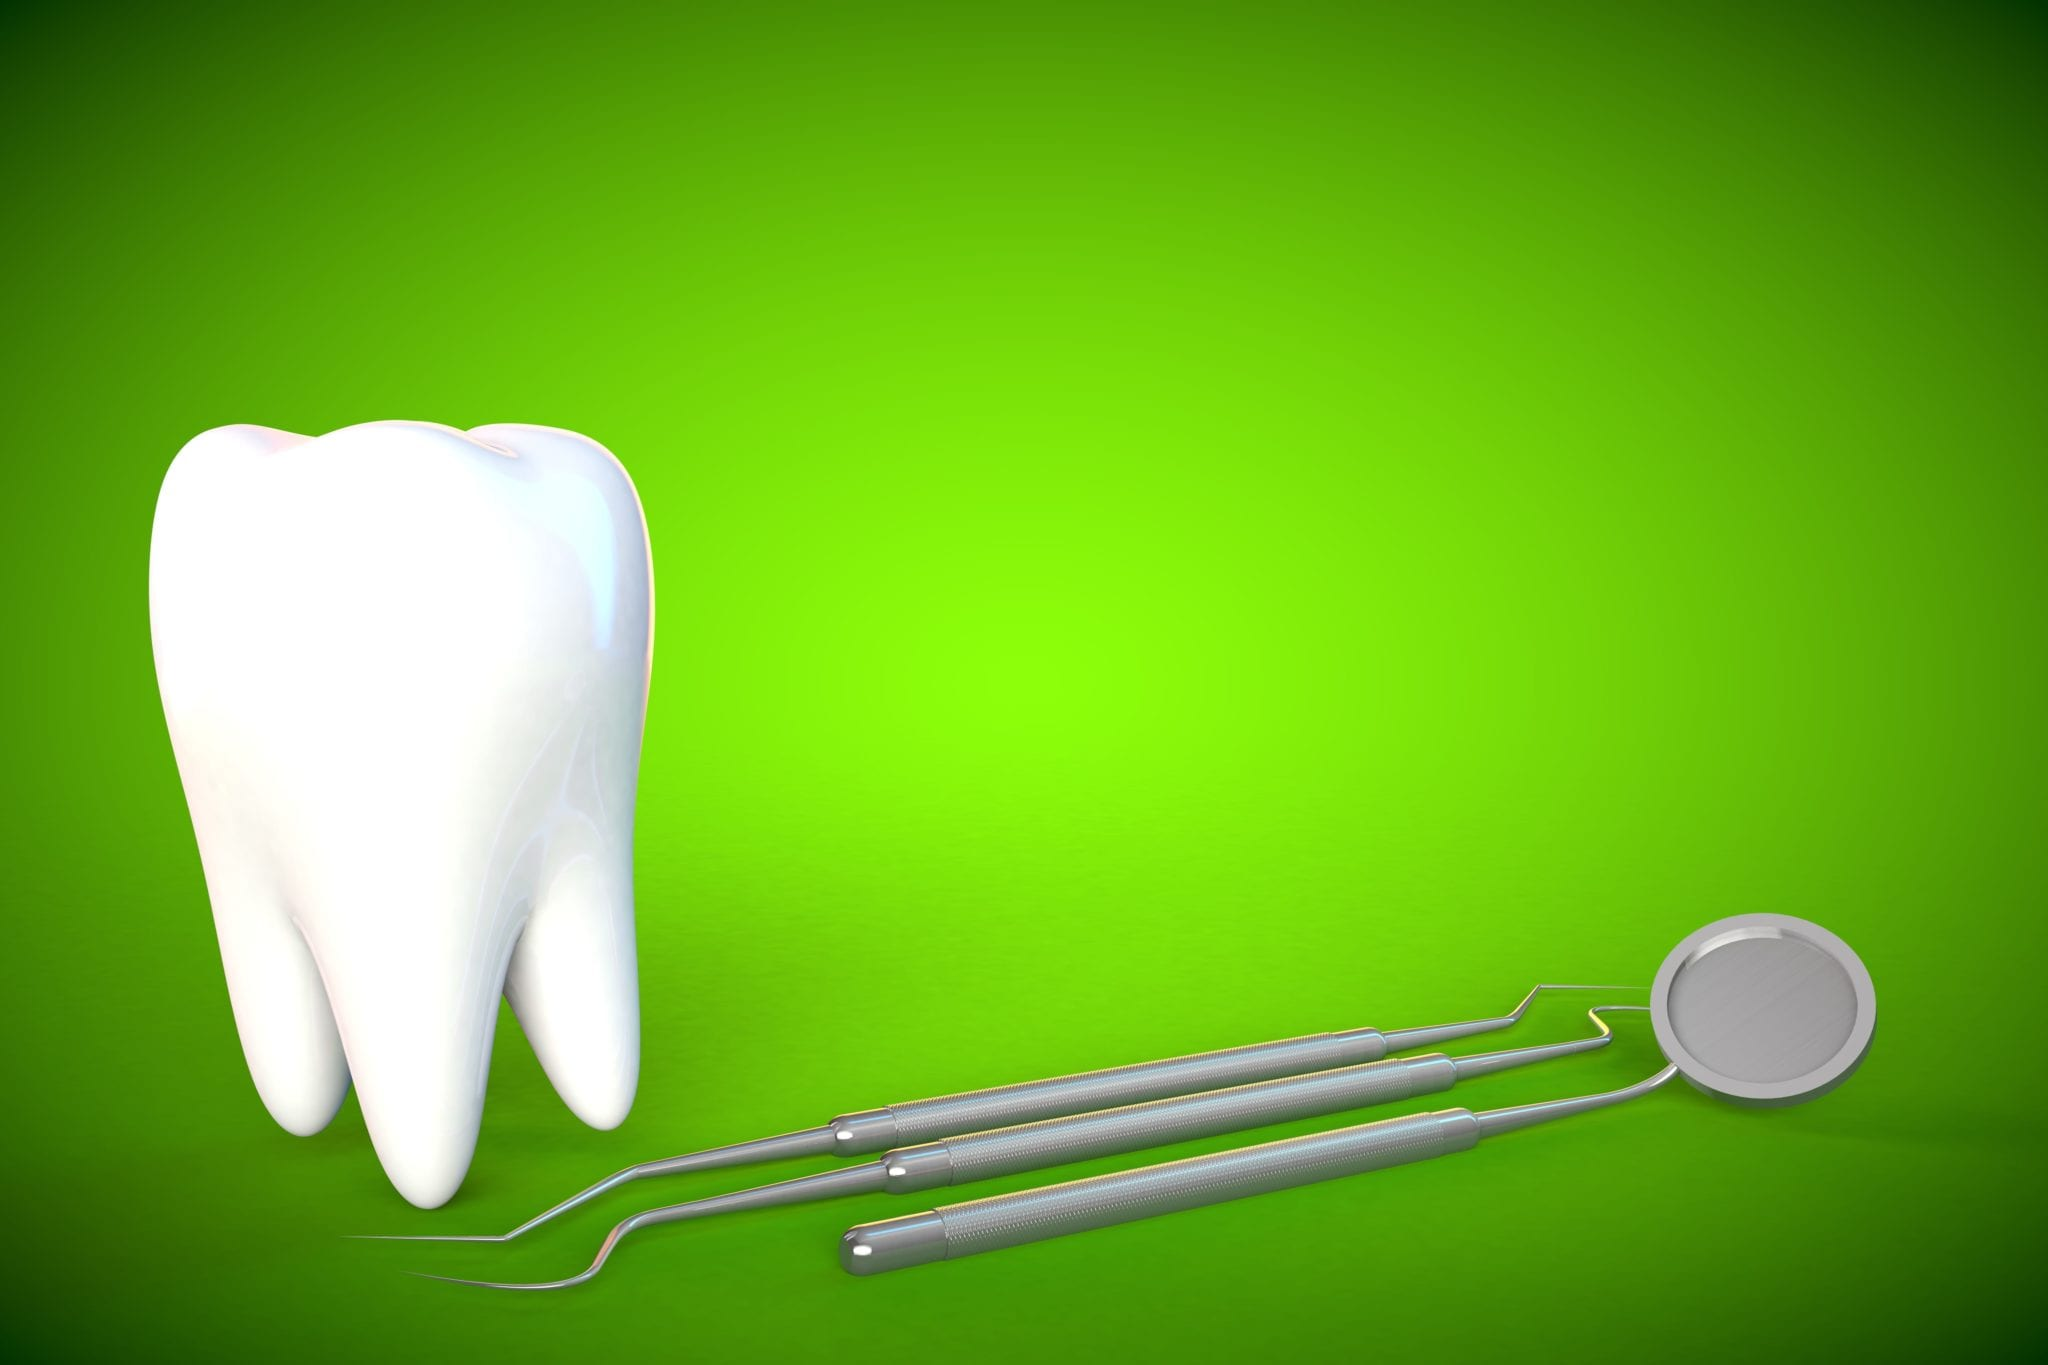 Giant tooth and dental mirror on a green background